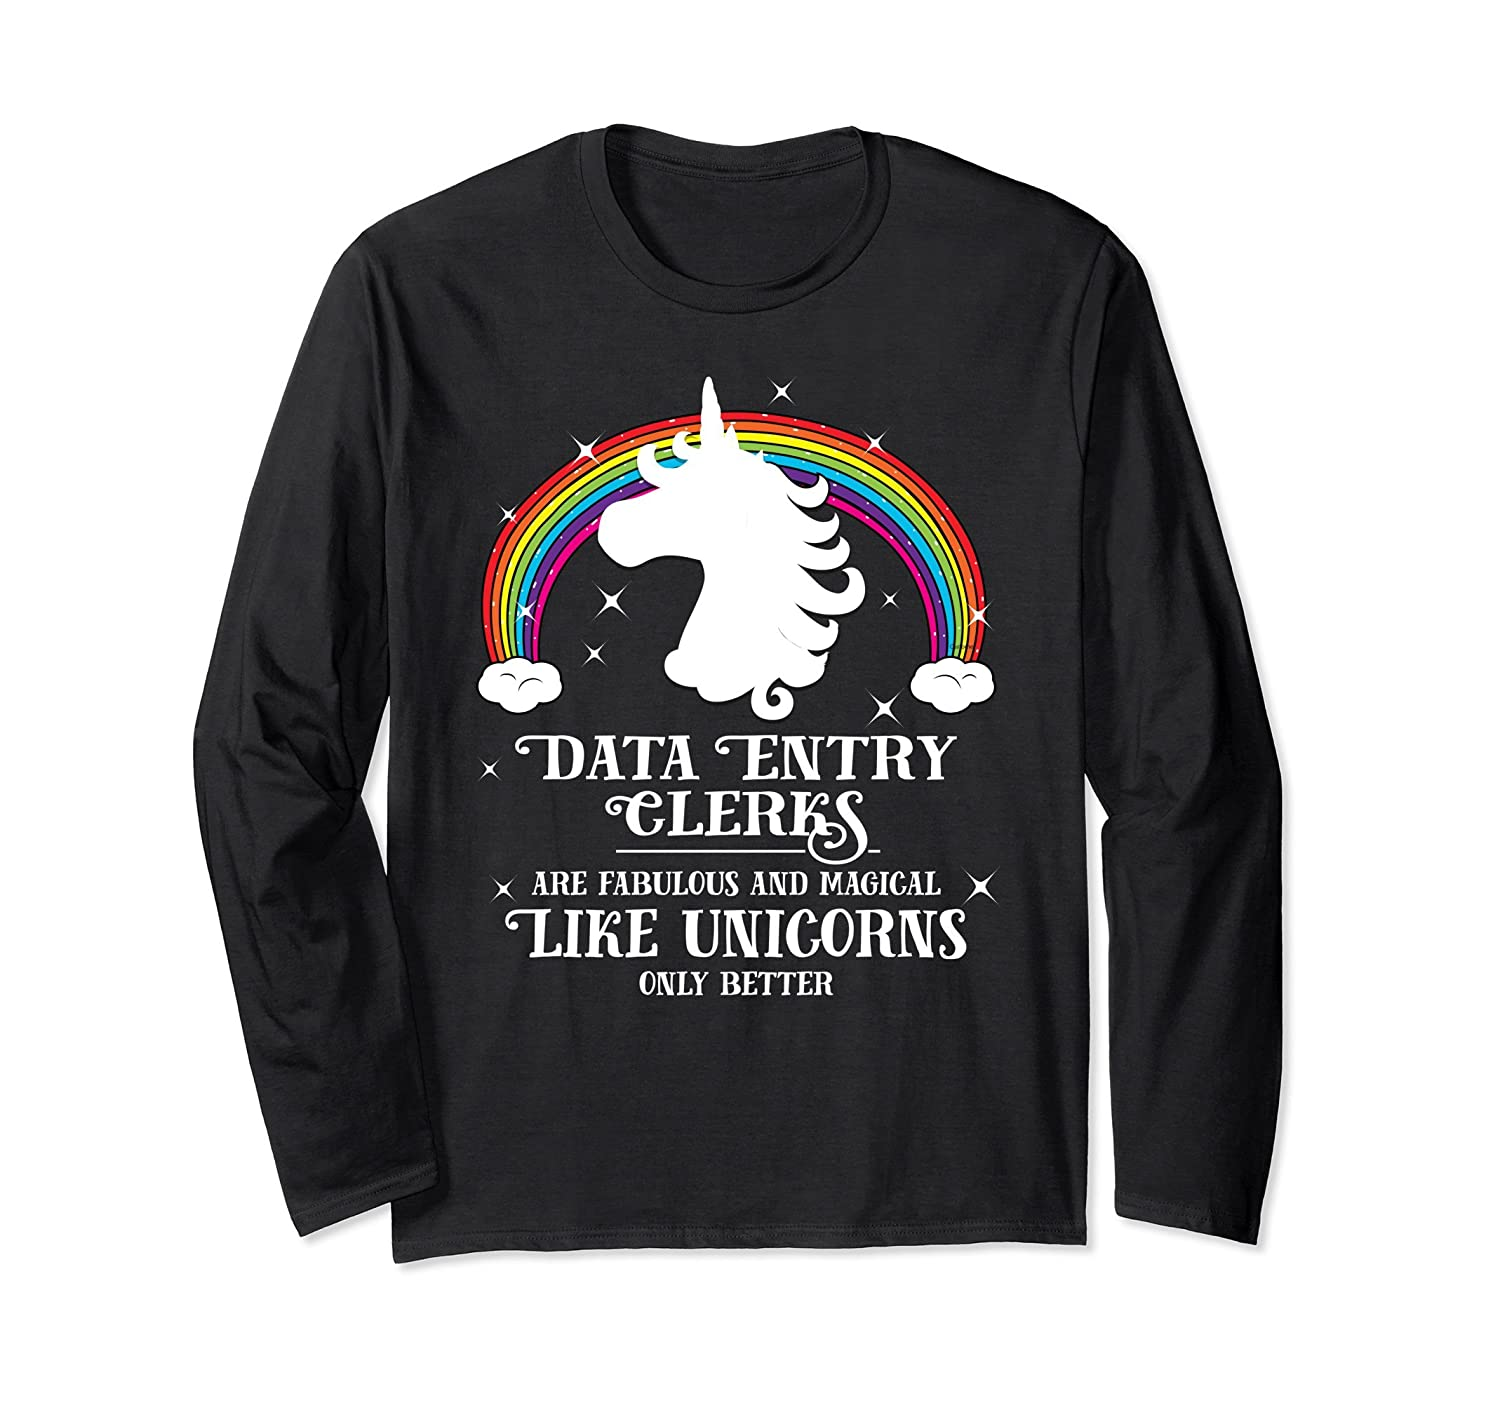 Data Entry Clerks are Magical Unicorns Long Sleeve Tshirt-fa